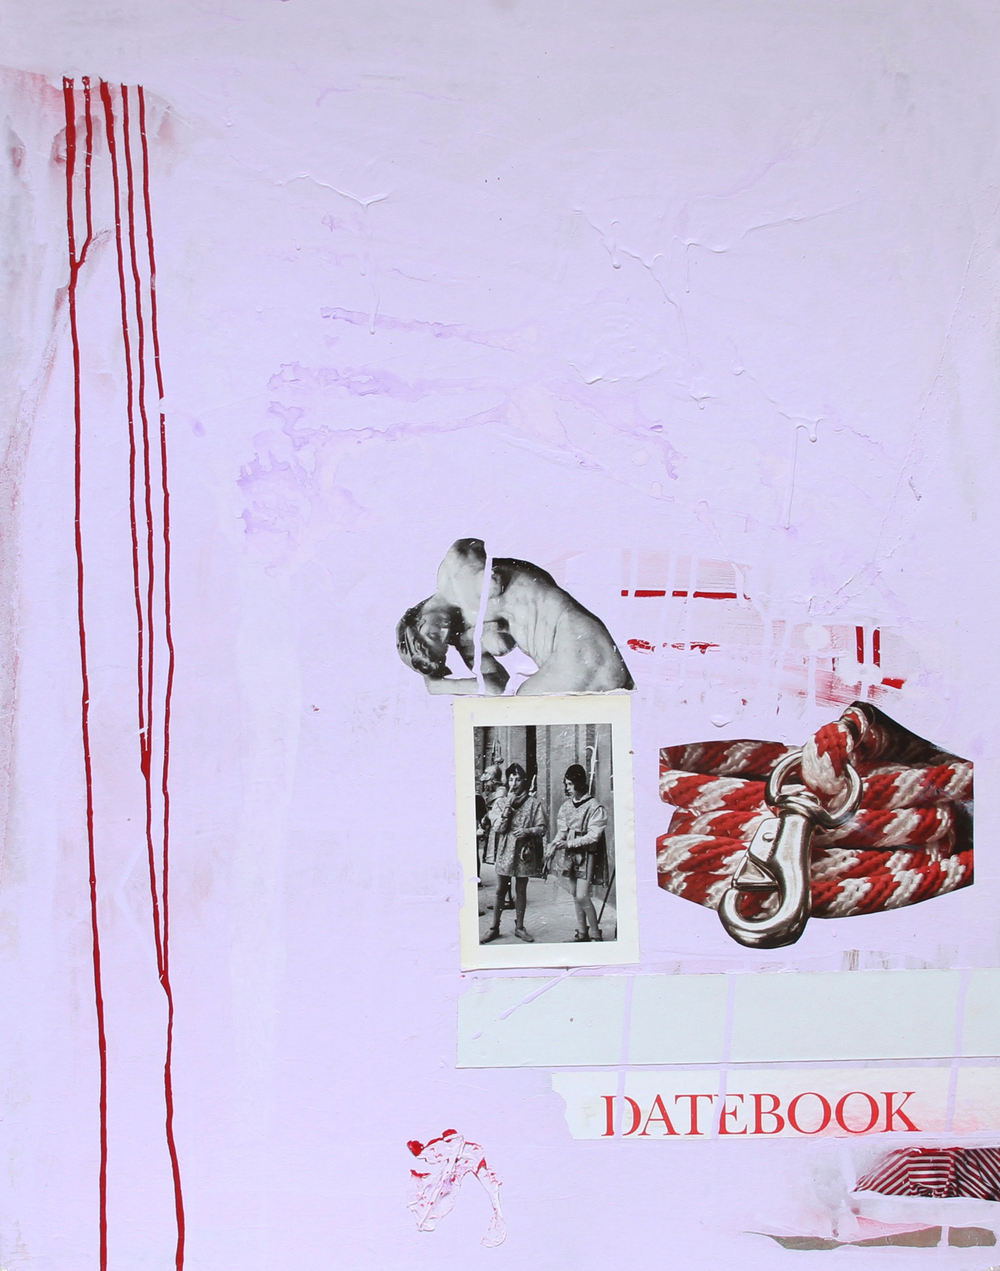 ARRANGEMENT 05 / DATEBOOK   2014 Acrylic, collage, aluminium and tape on paper 28 x 22 in 71 x 56 cm